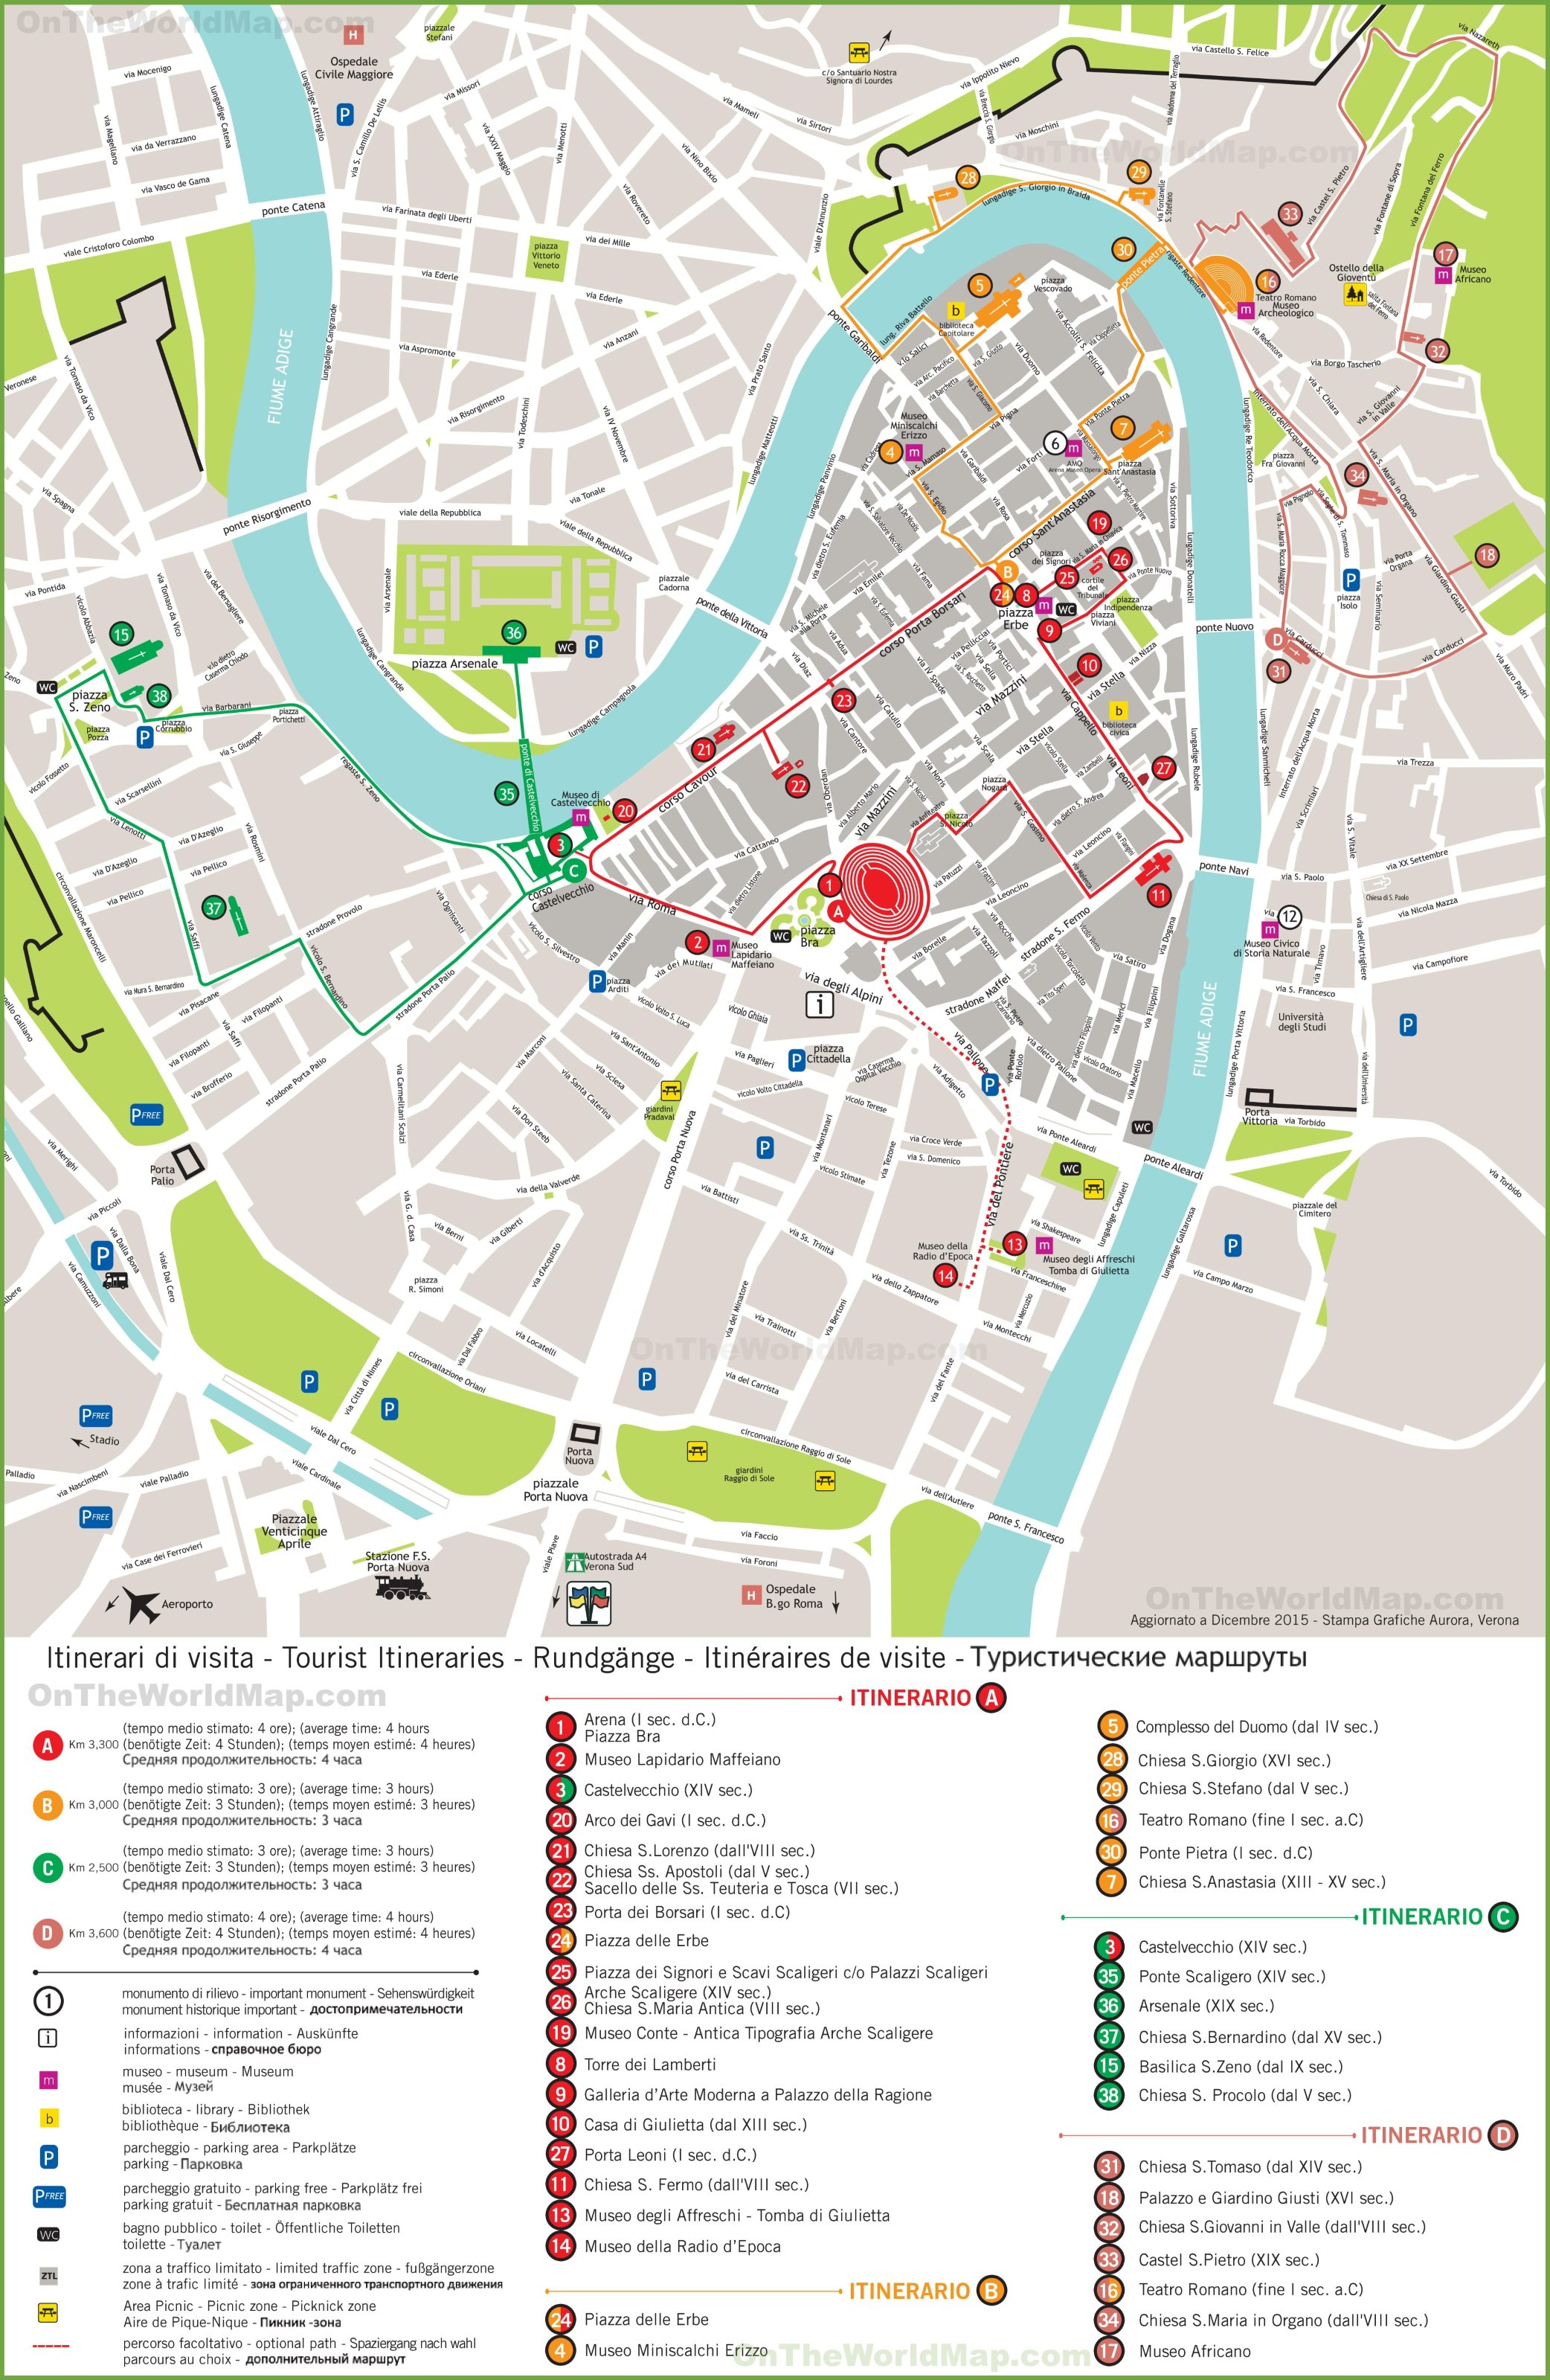 verona tourism map - photo#4